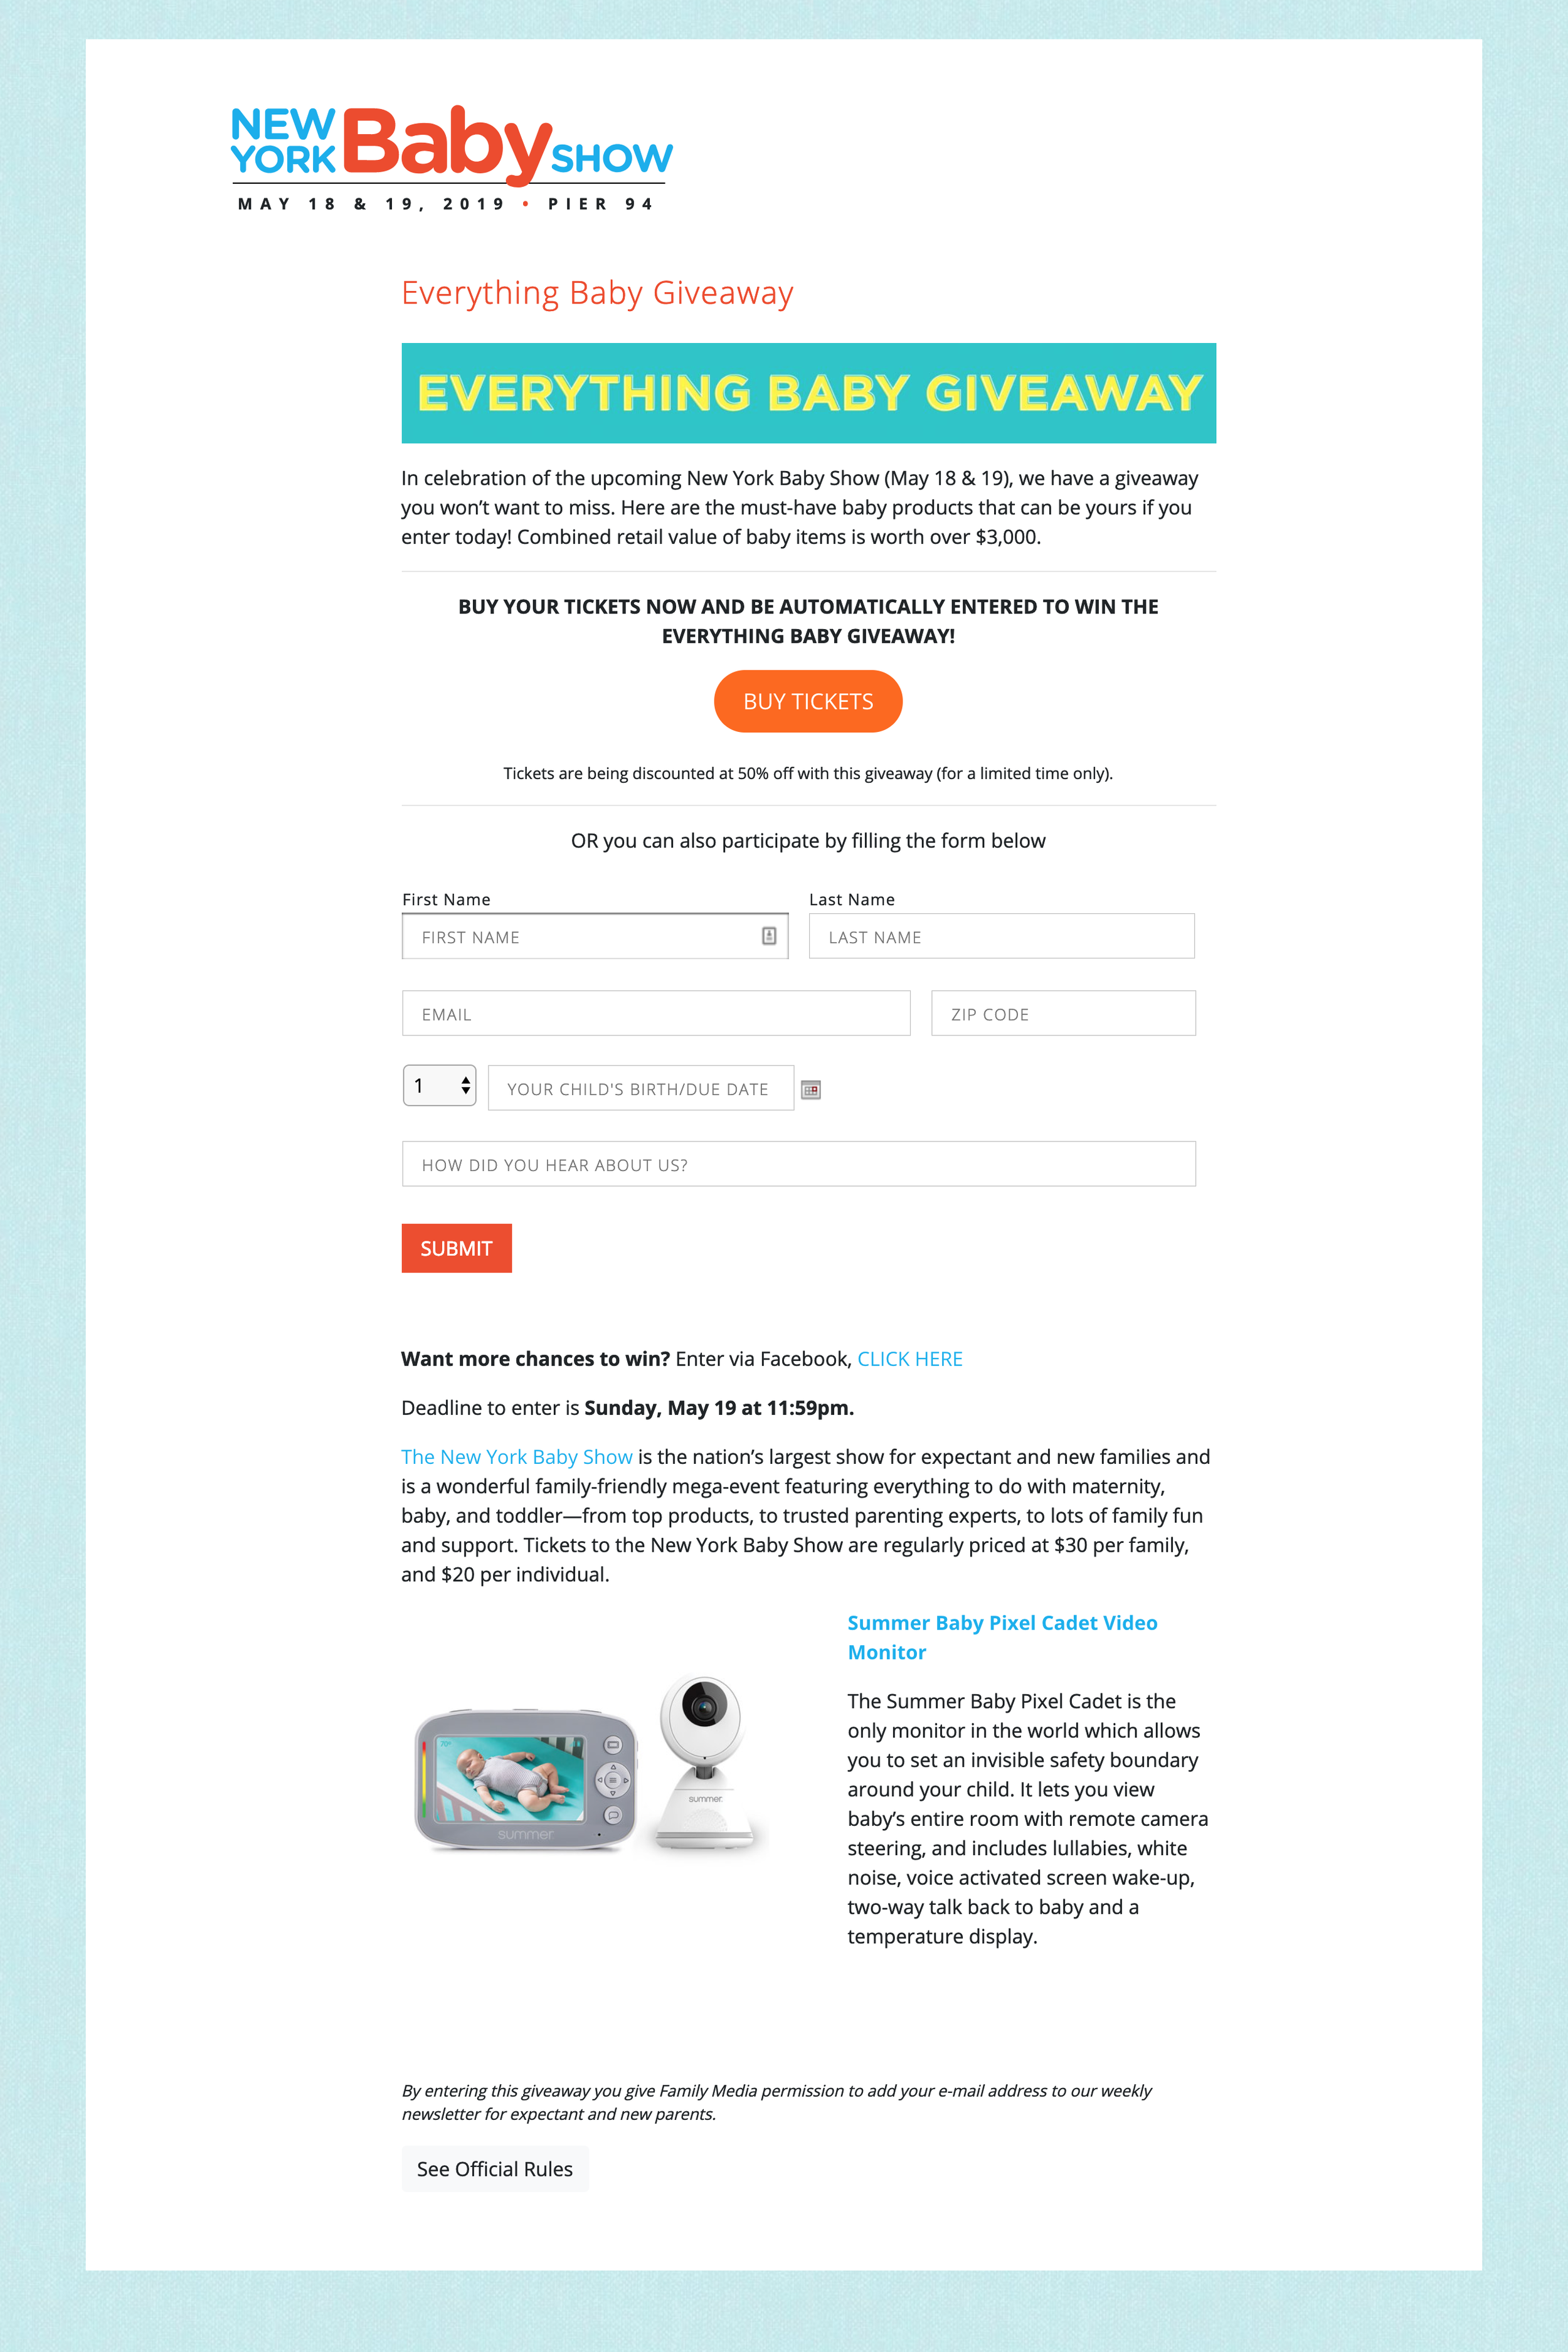 2019.03.14_(New York Family Online) newyorkbabyshow.com_Summer Baby Pixel Cadet_cropped 2x3.png